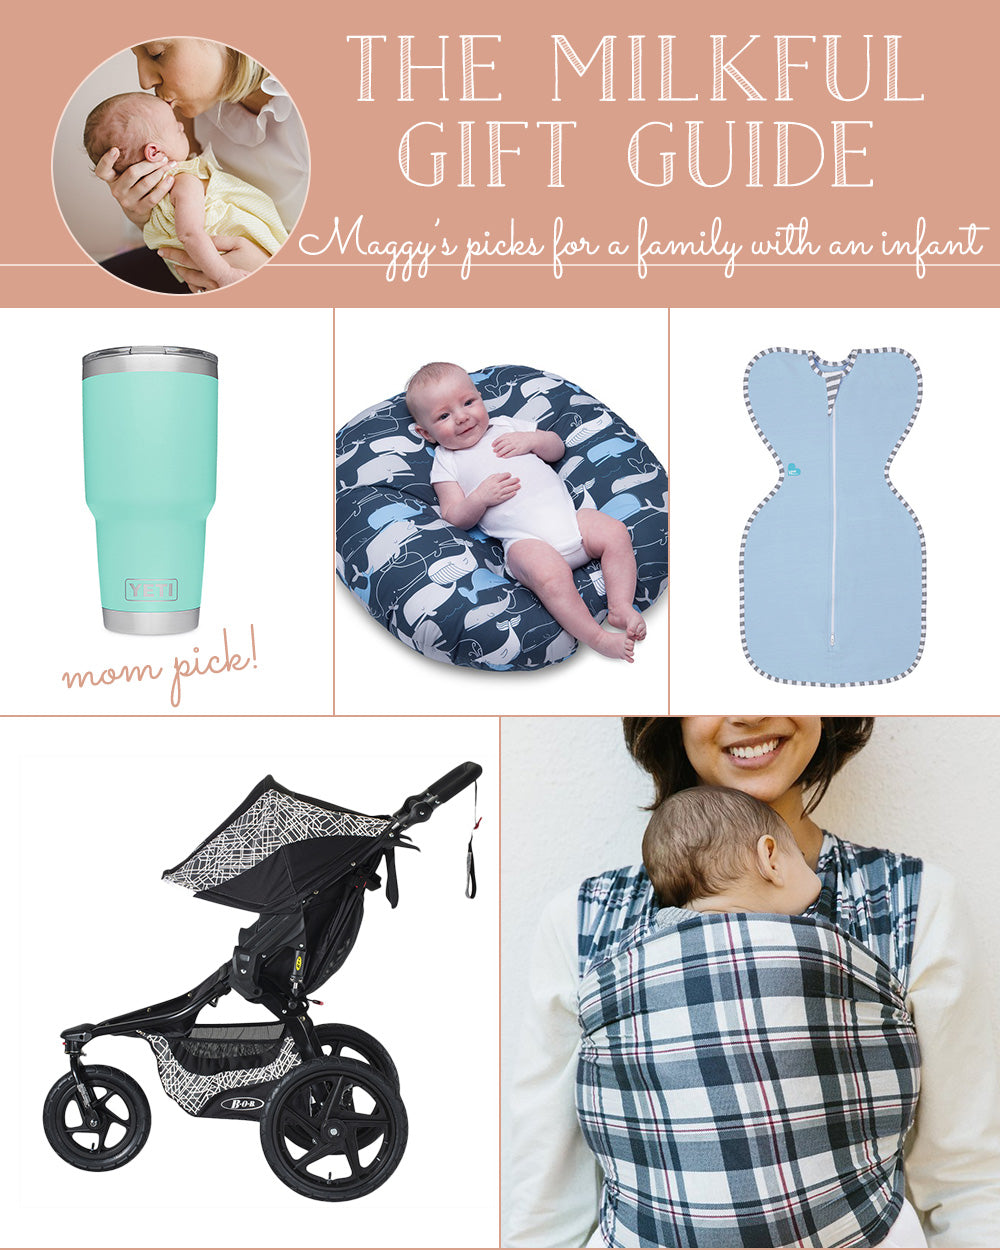 The Milkful Gift Guide for a Family with an Infant